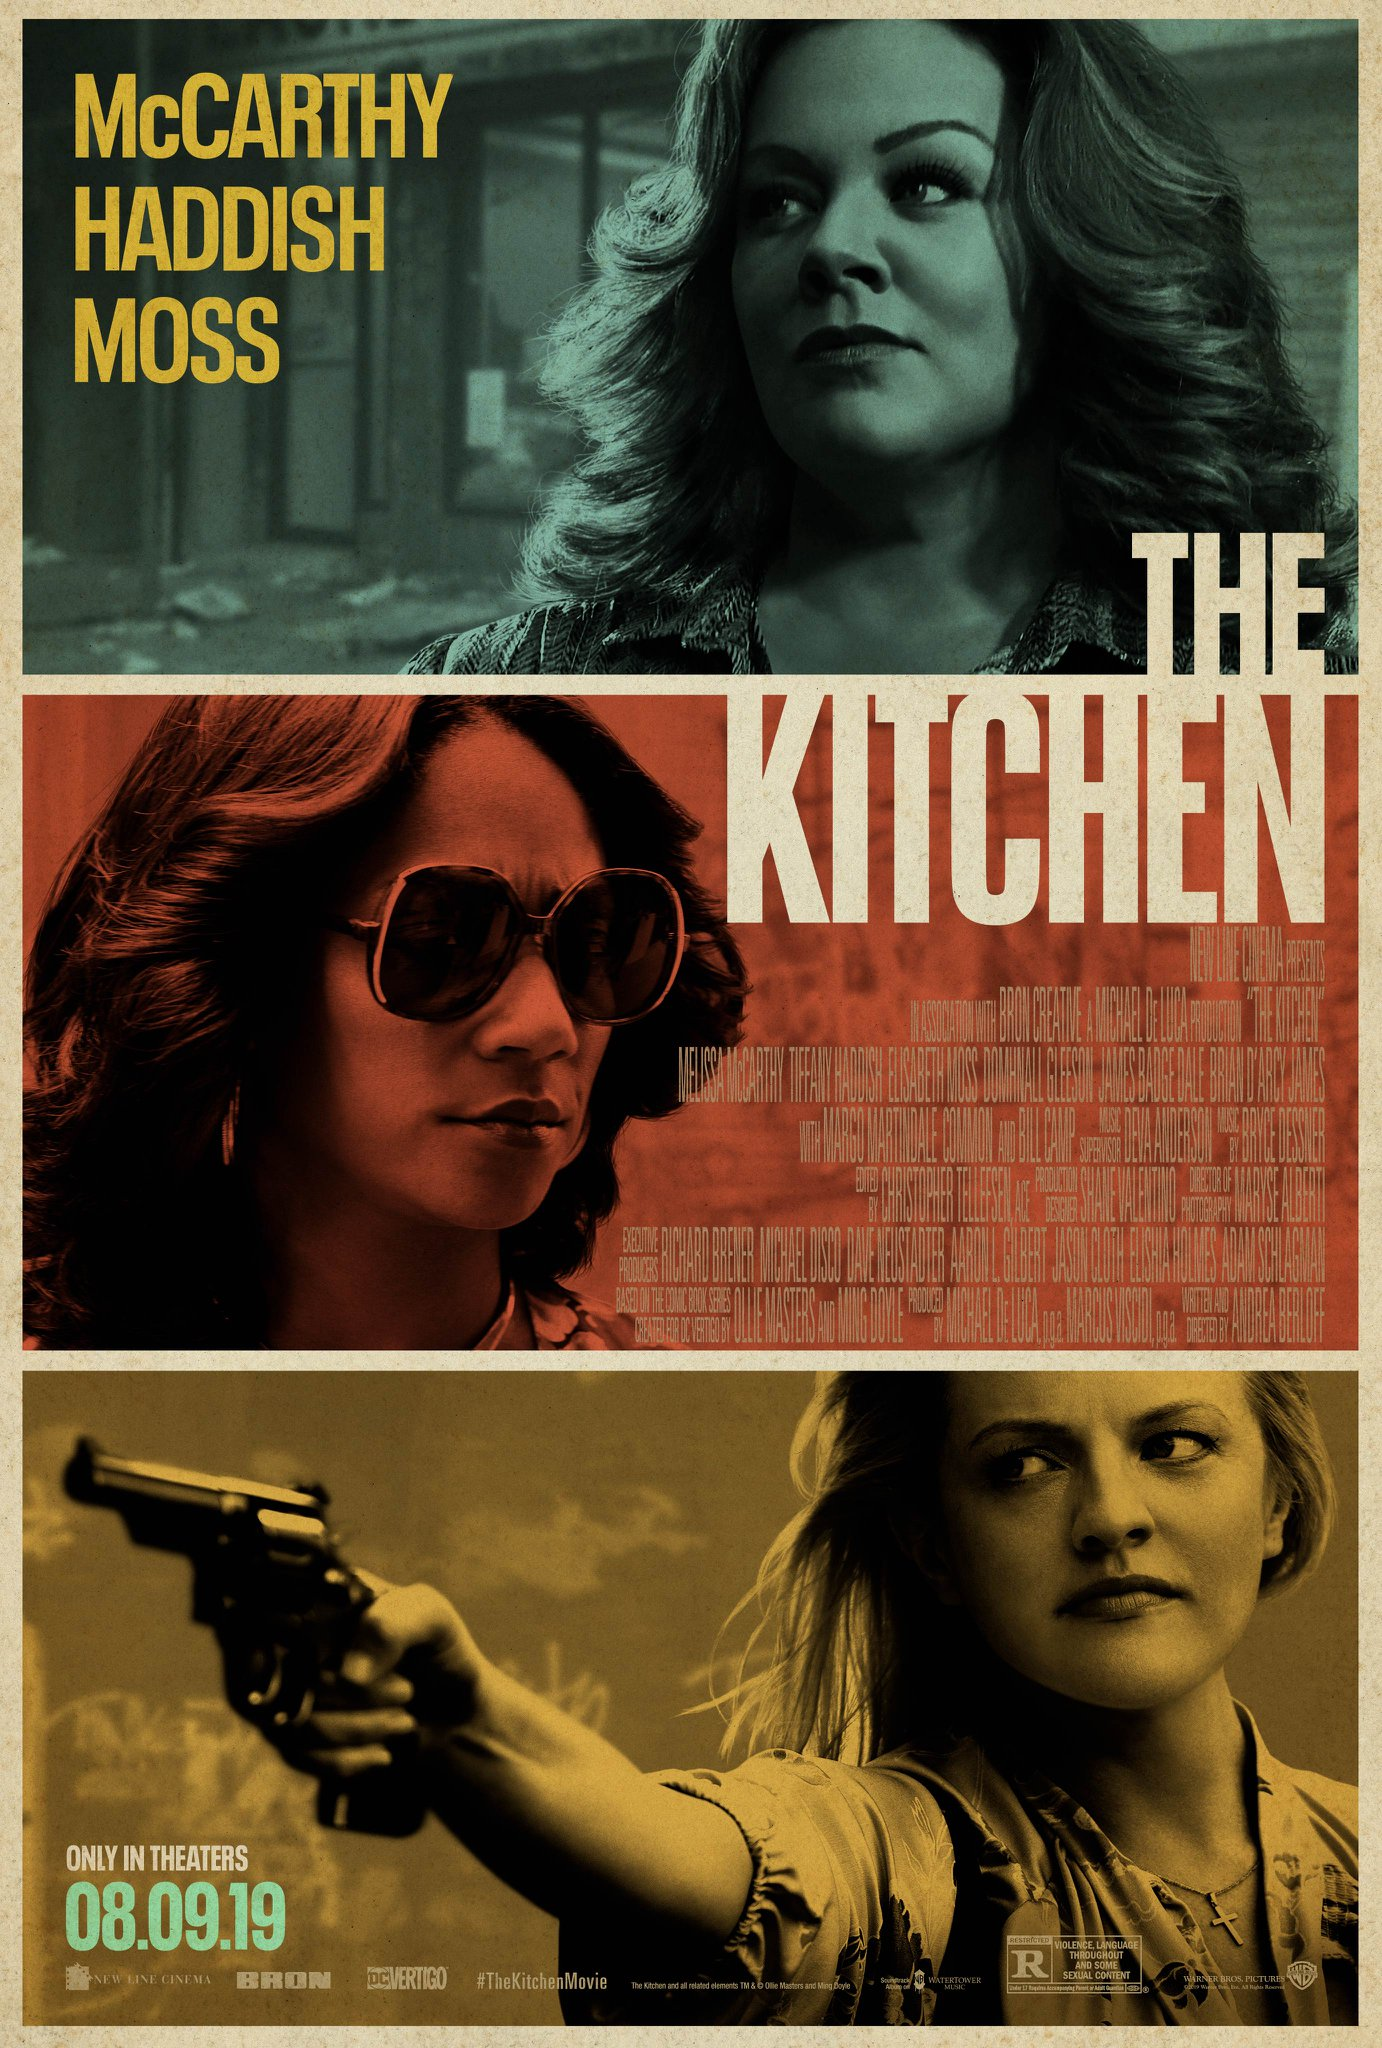 @KitchenMovie